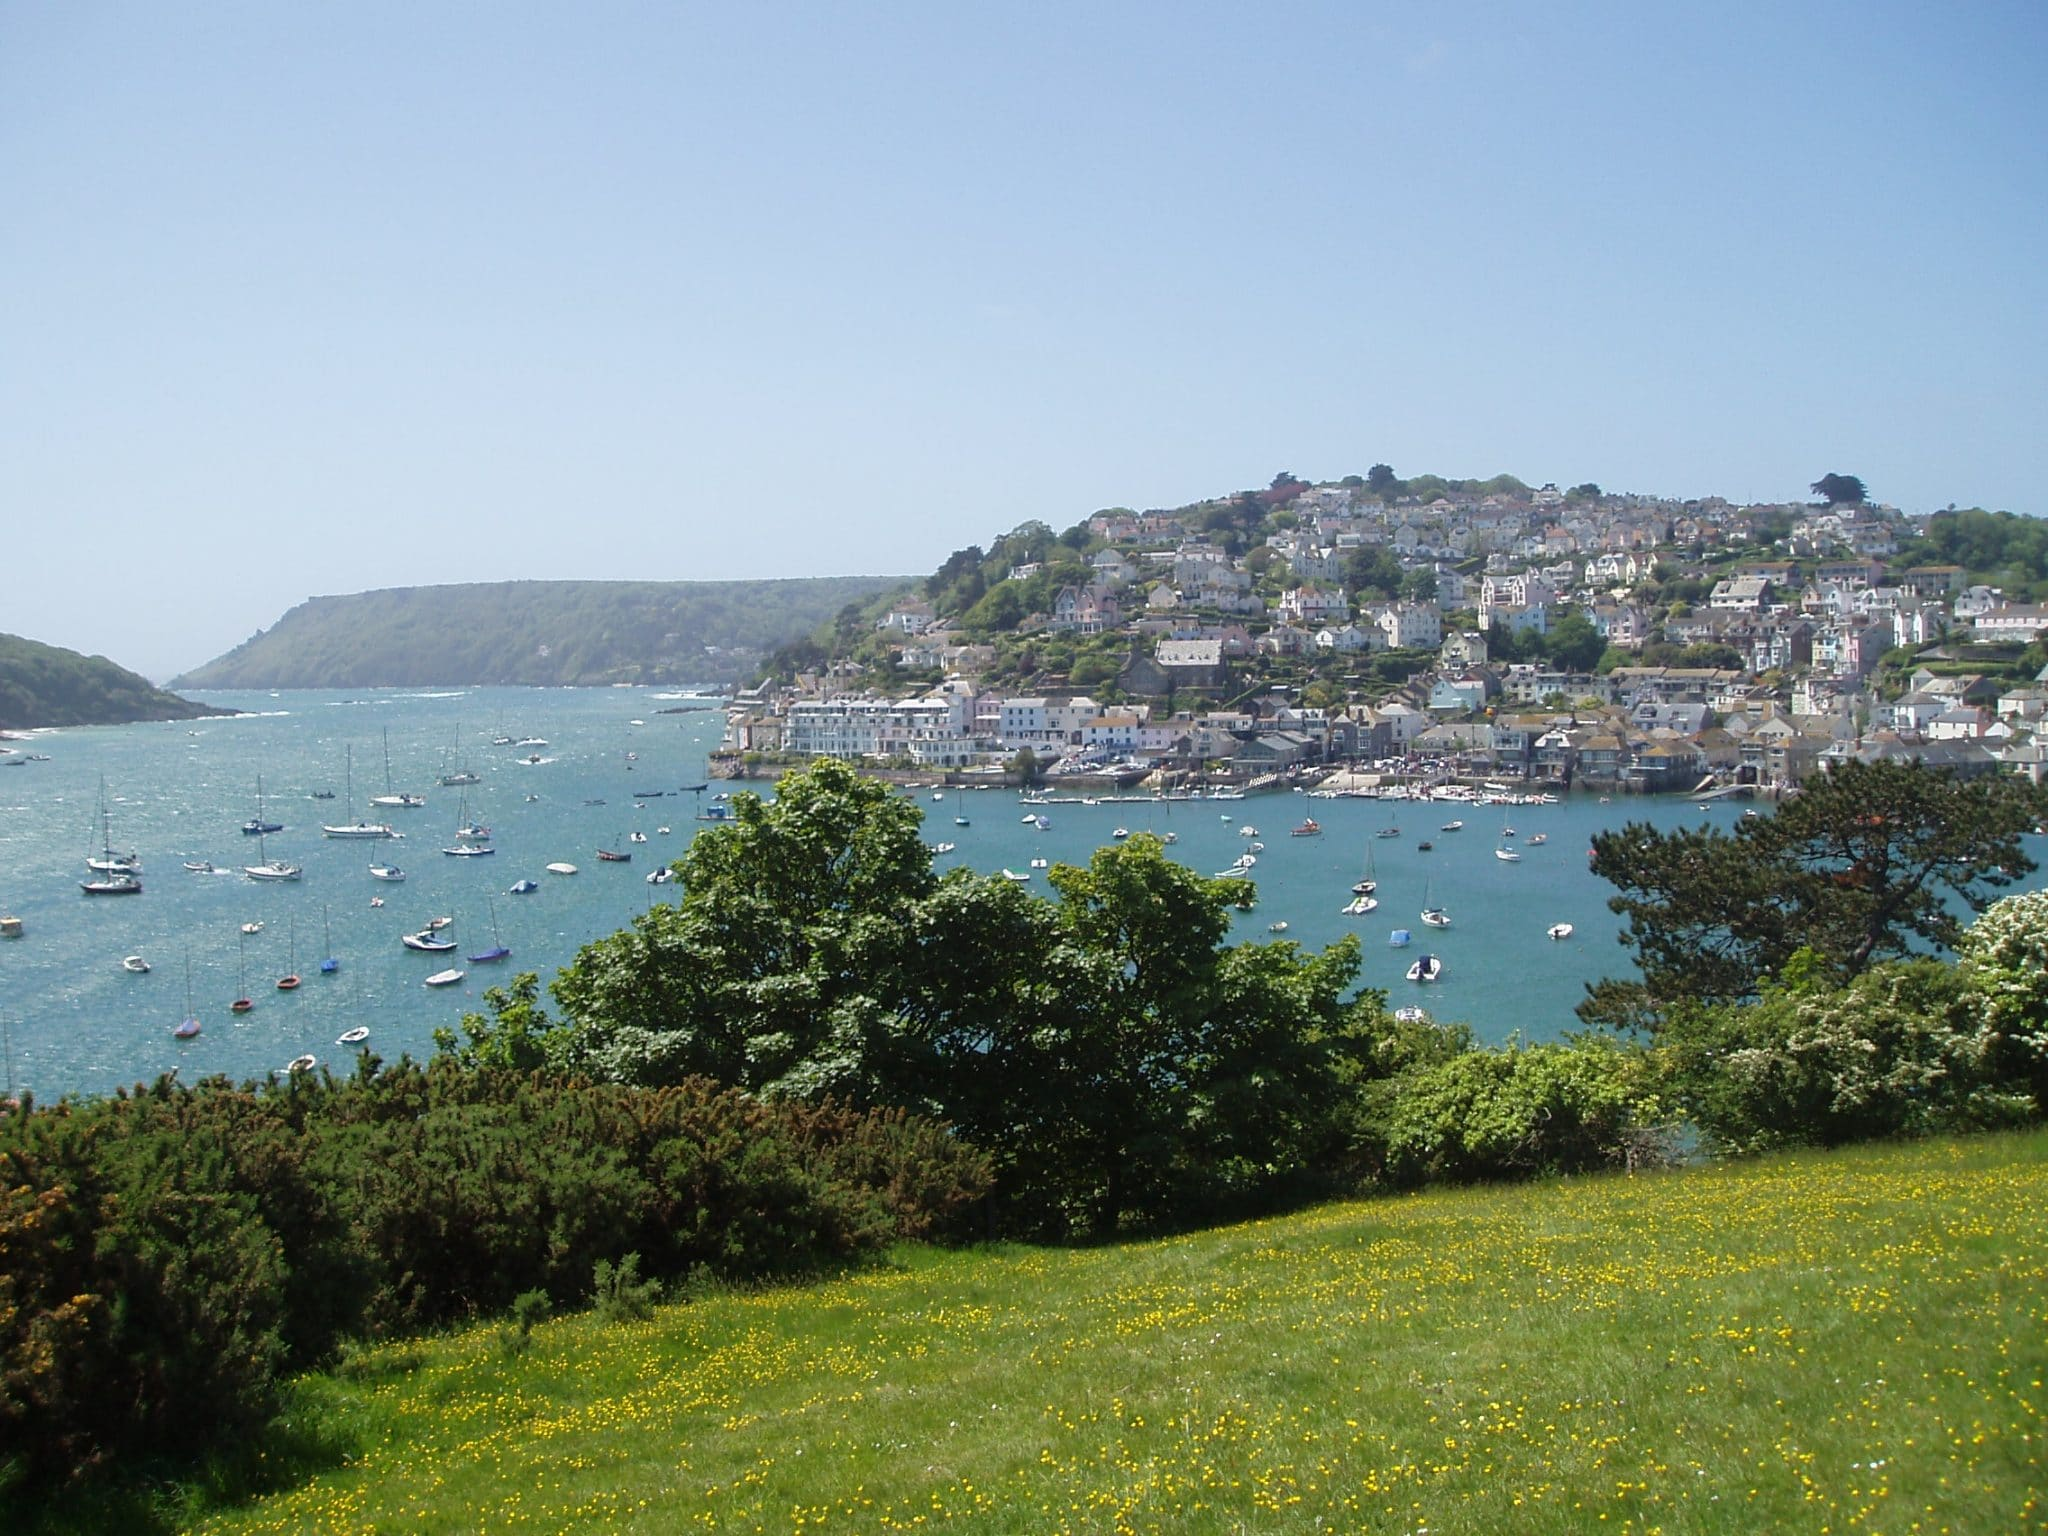 Photo looking down towards the town of Salcombe and Salcombe Harbour from Snapes Point